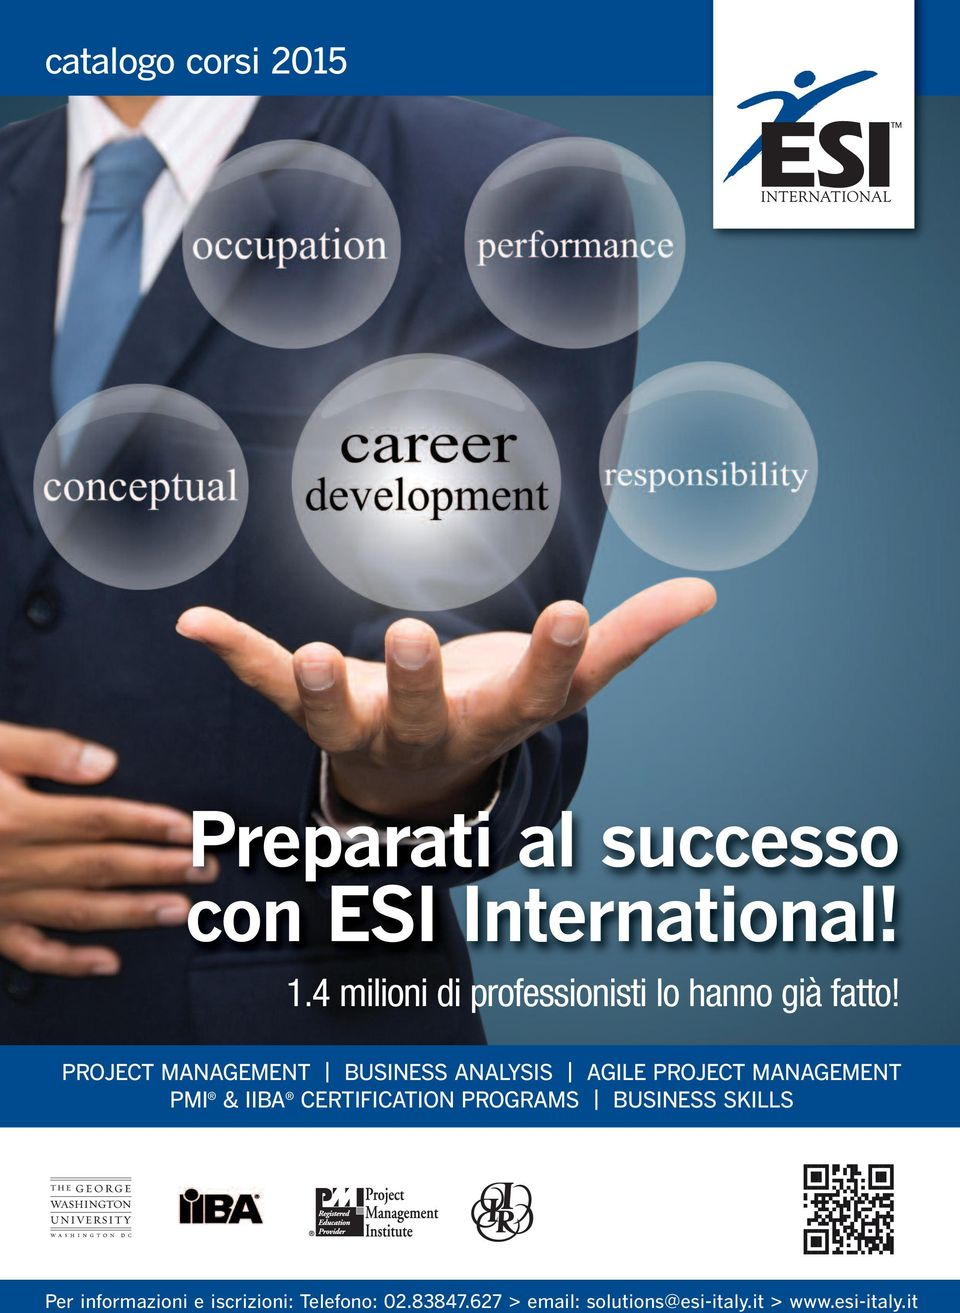 PROJECT MANAGEMENT BUSINESS ANALYSIS AGILE PROJECT MANAGEMENT PMI & IIBA